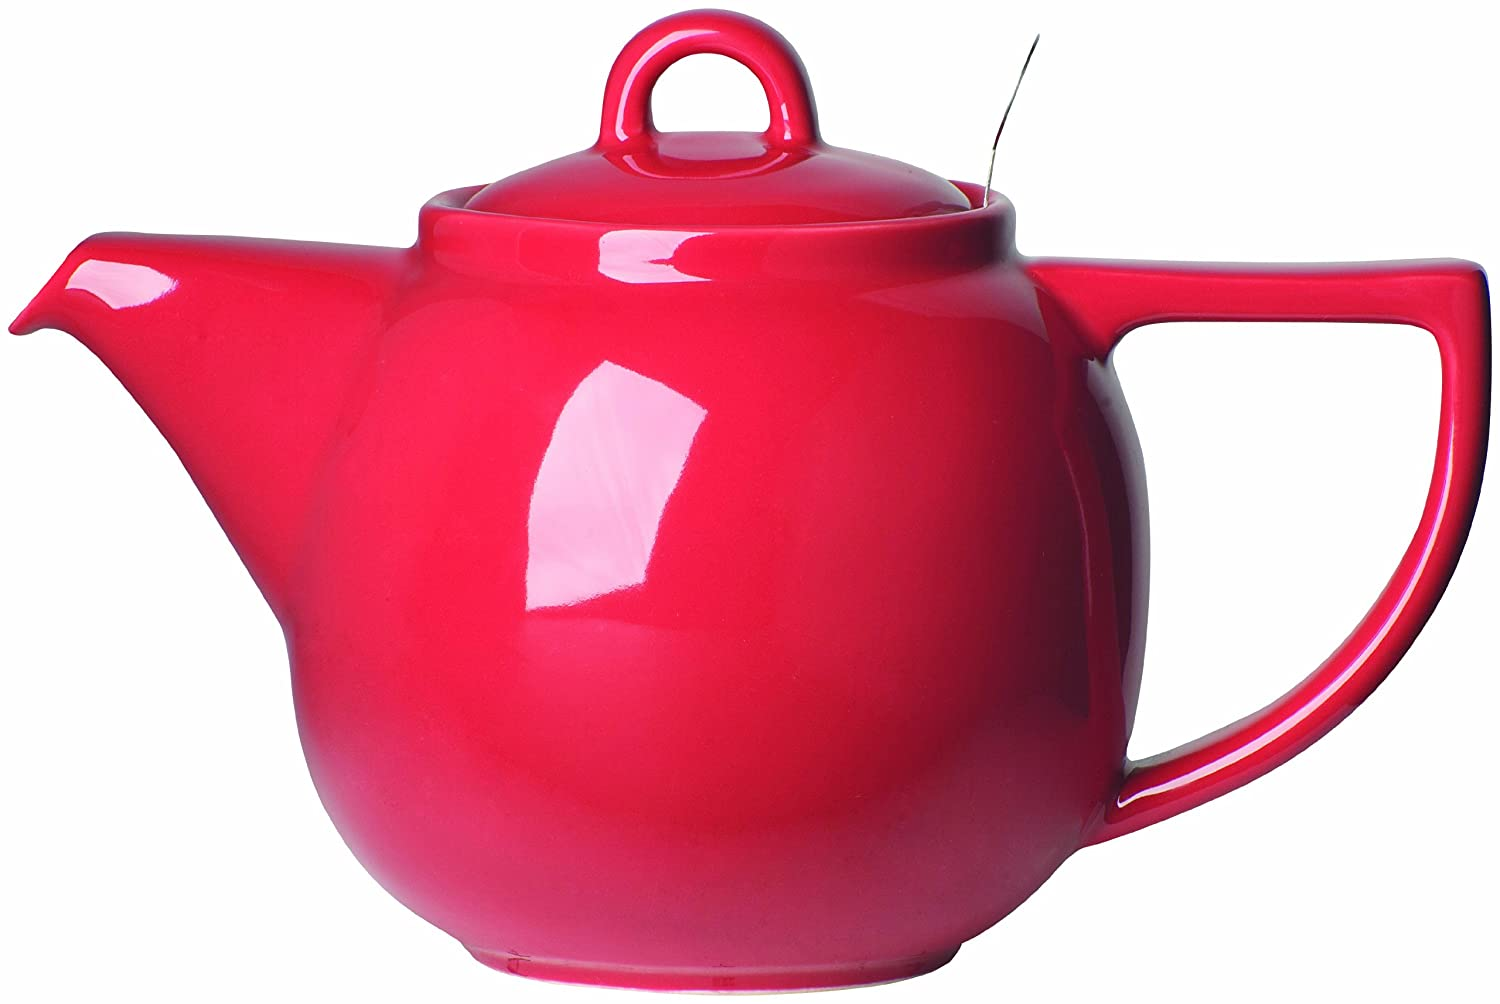 London Pottery Geo Teapot with Stainless Steel Infuser, 4 Cup Capacity